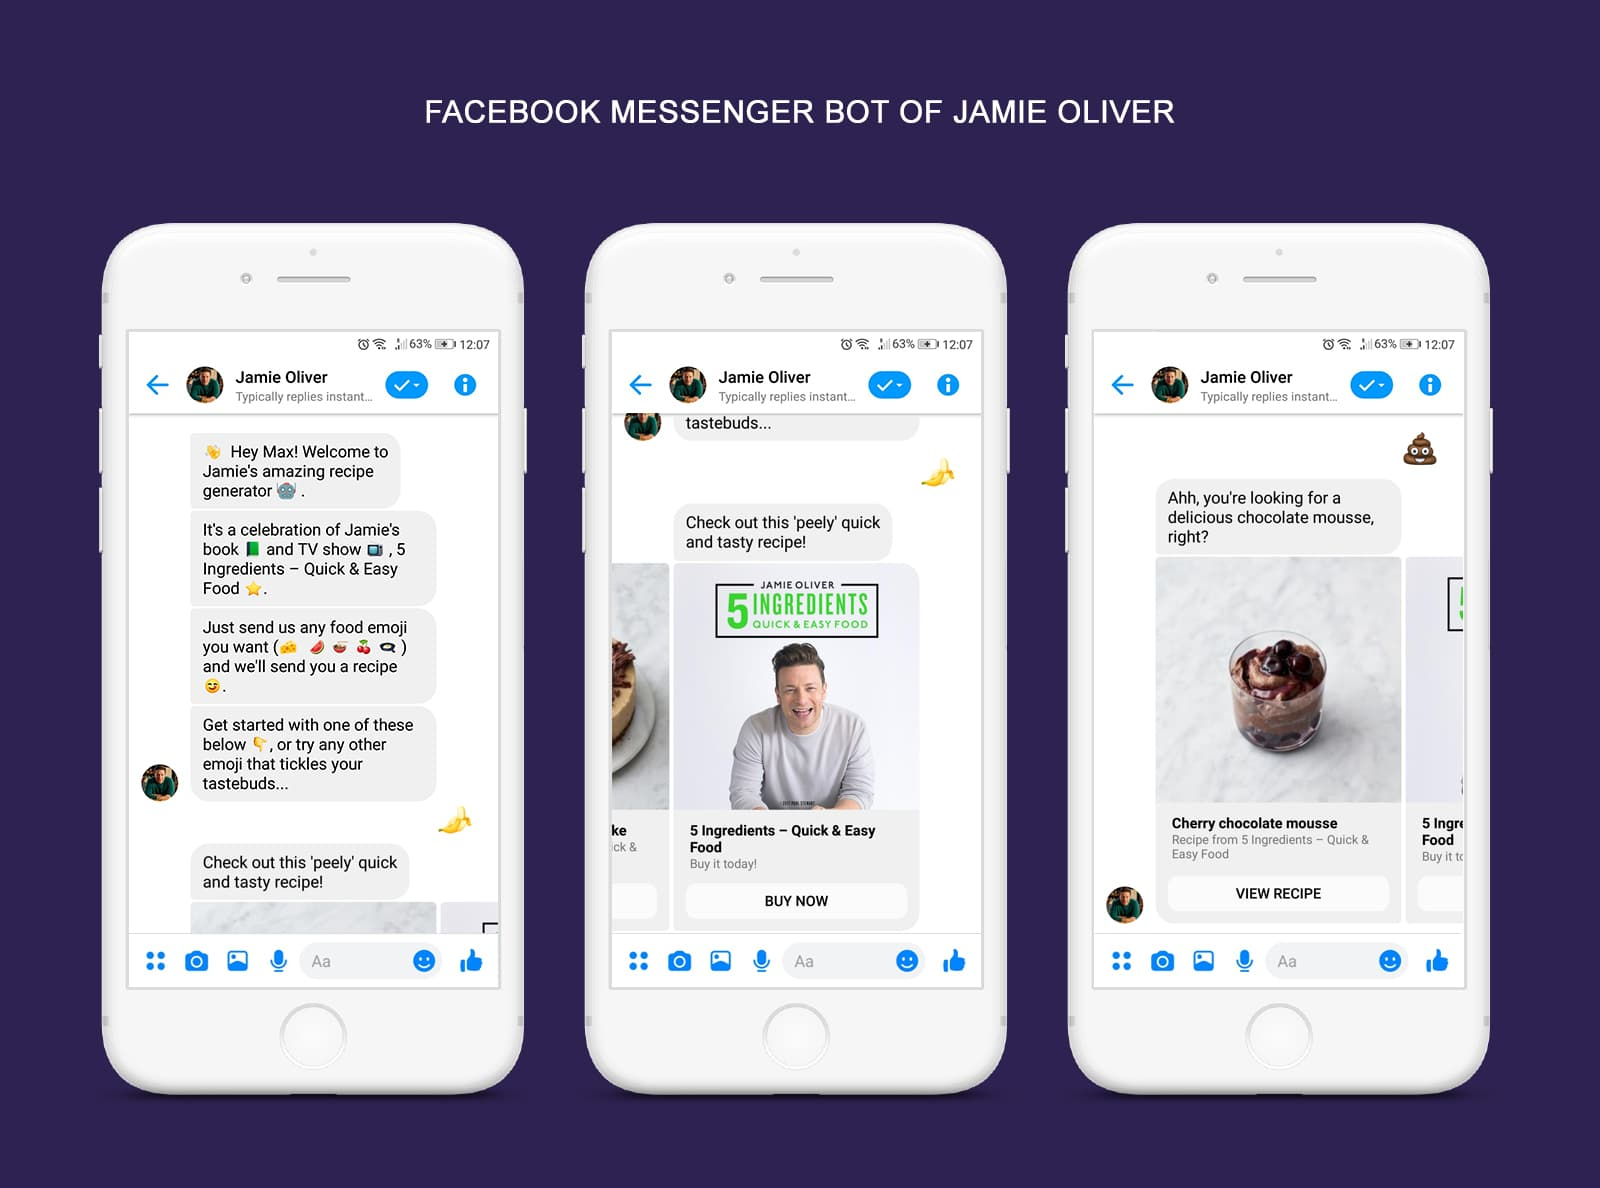 Facebook Messenger Bot of Jamie Oliver